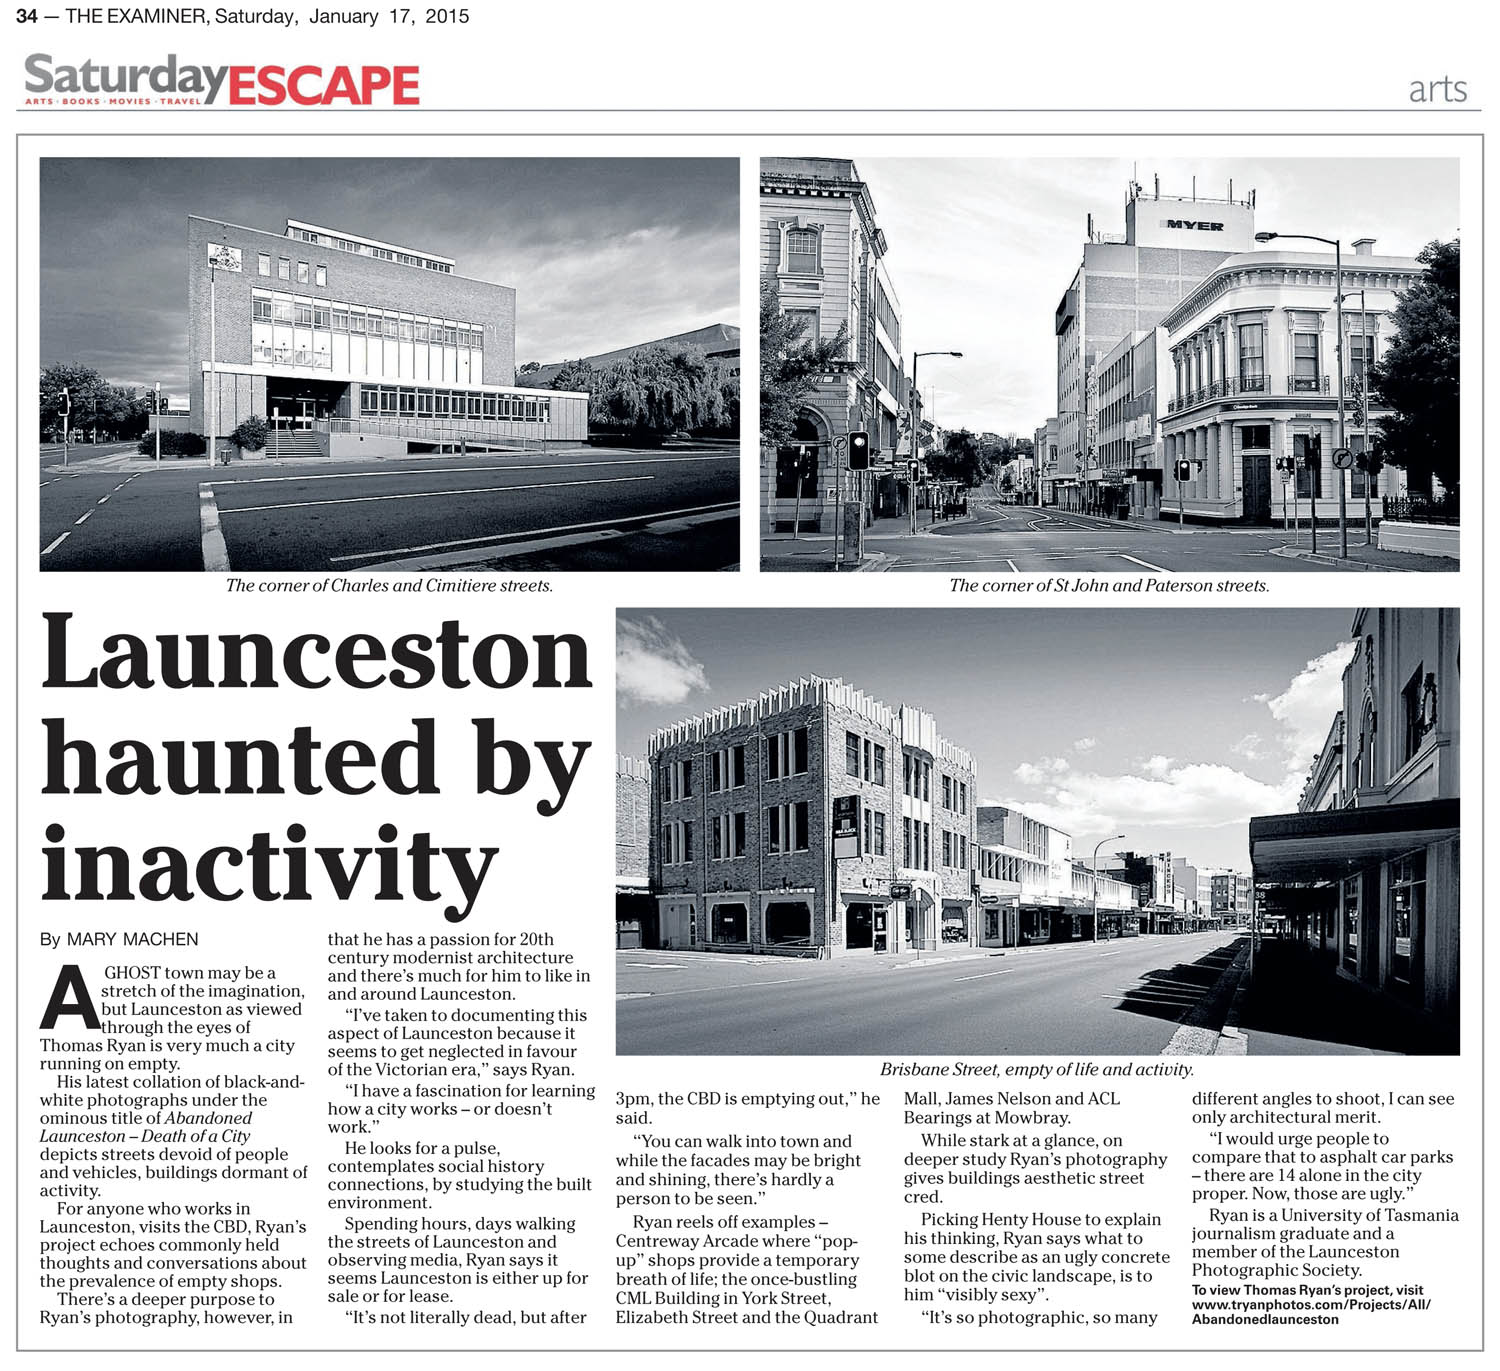 The Examiner Newspaper, Interview about my project ''Launceston - Death of a City'' project